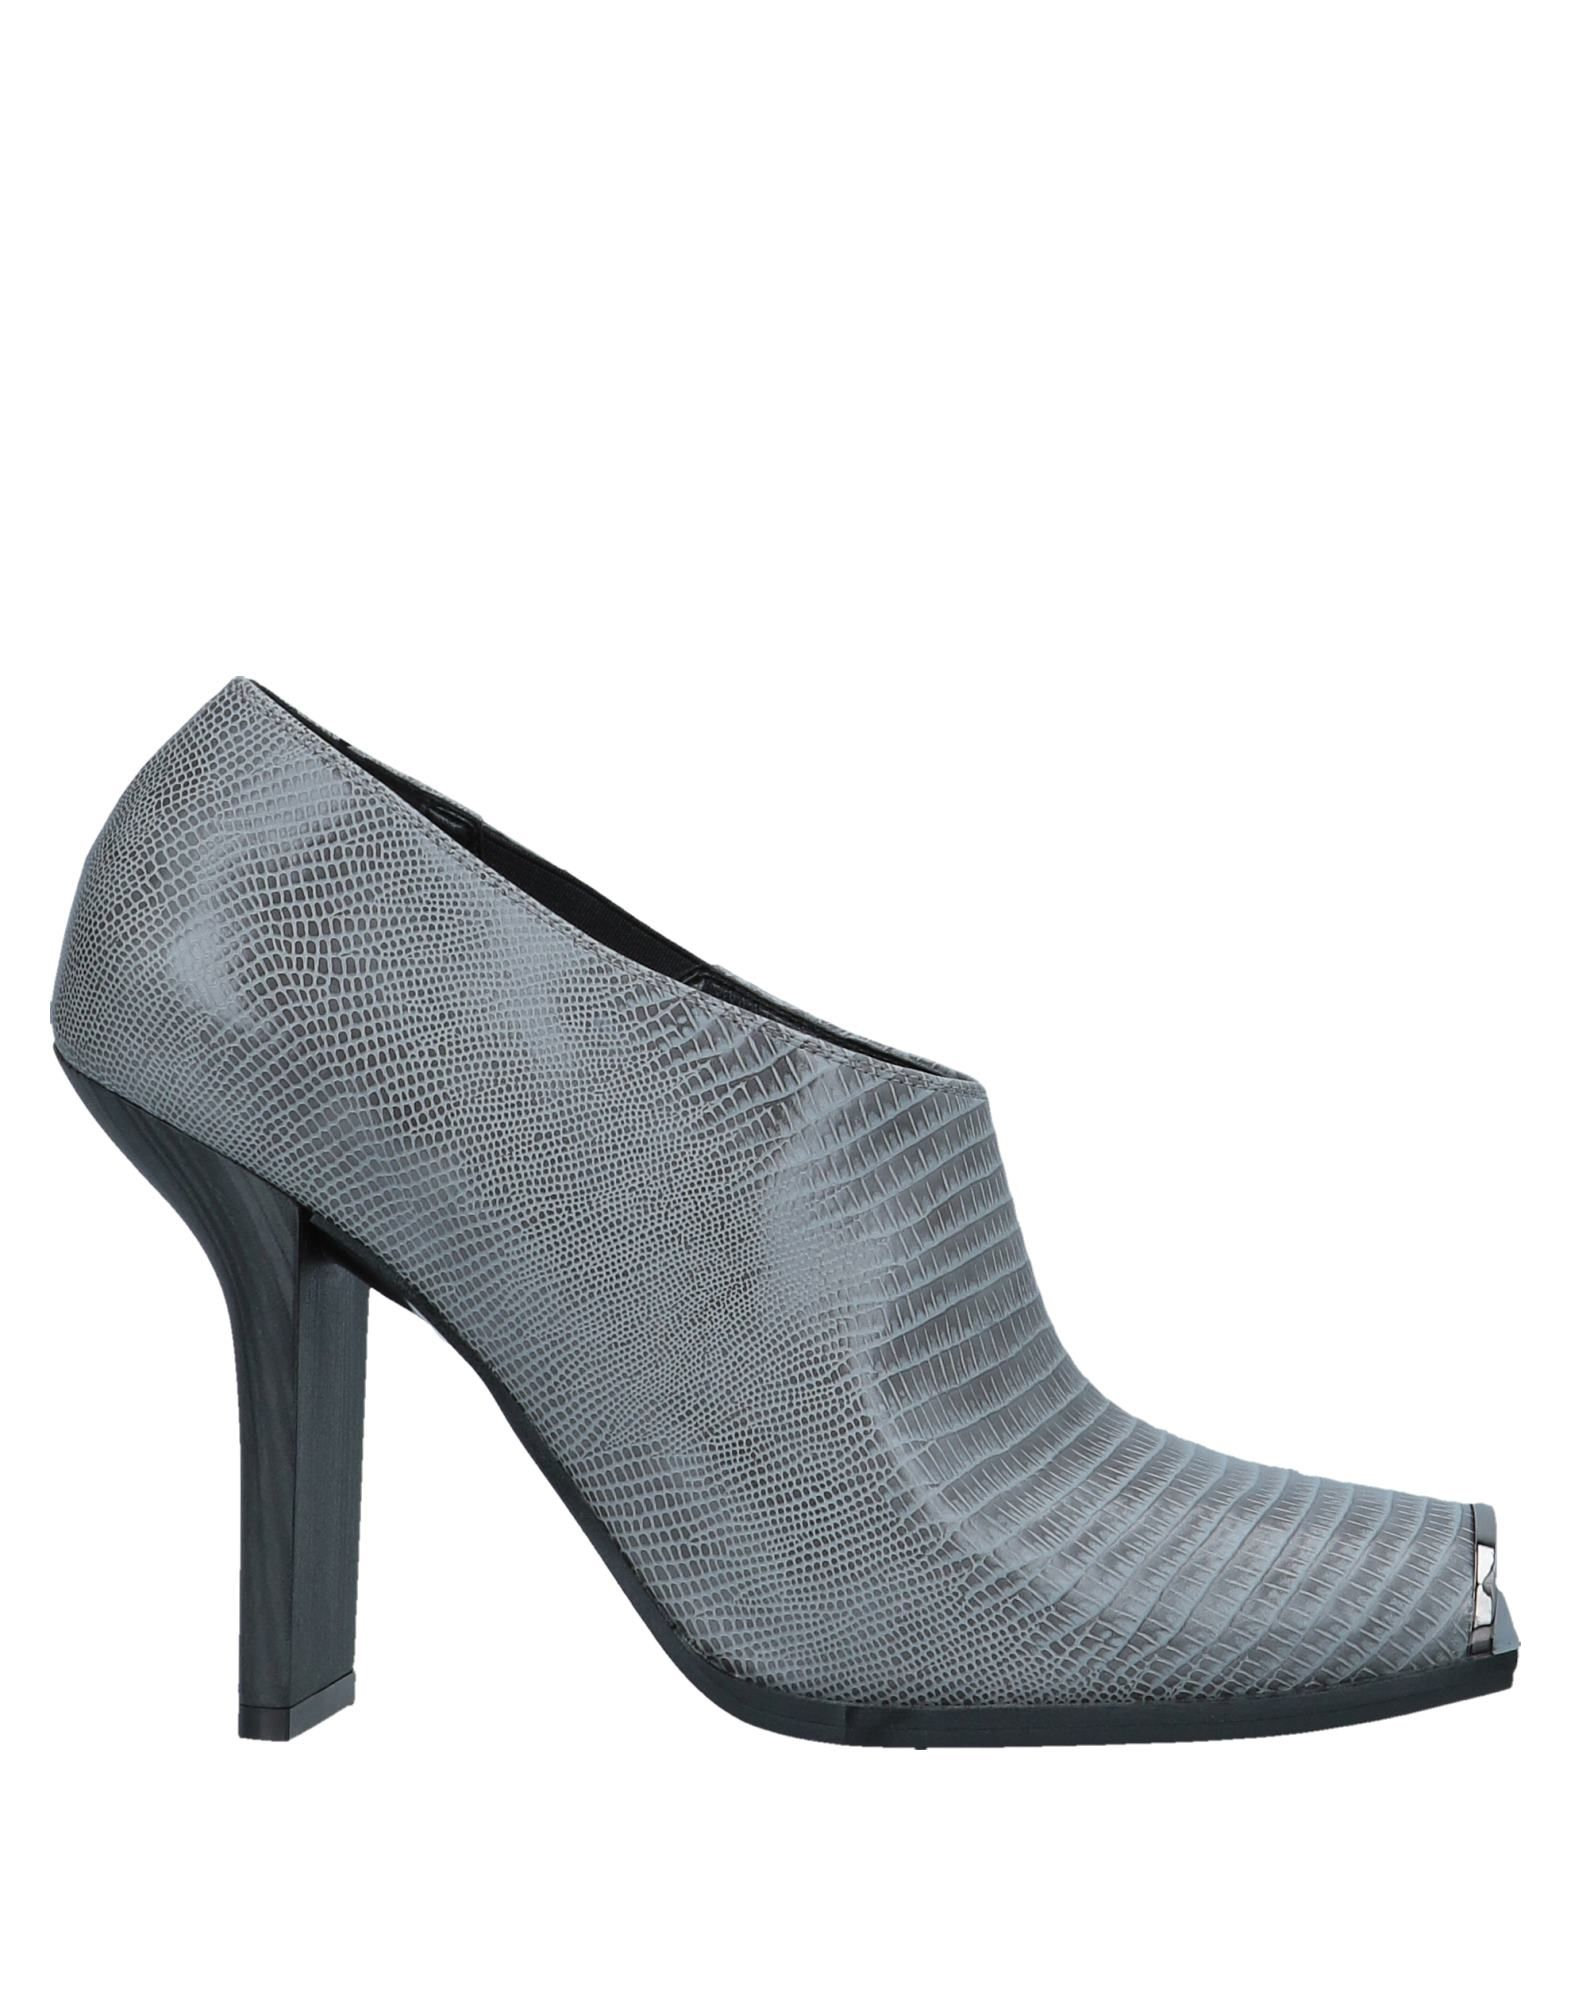 30616fe587f Booties - Buy Best Booties from Fashion Influencers